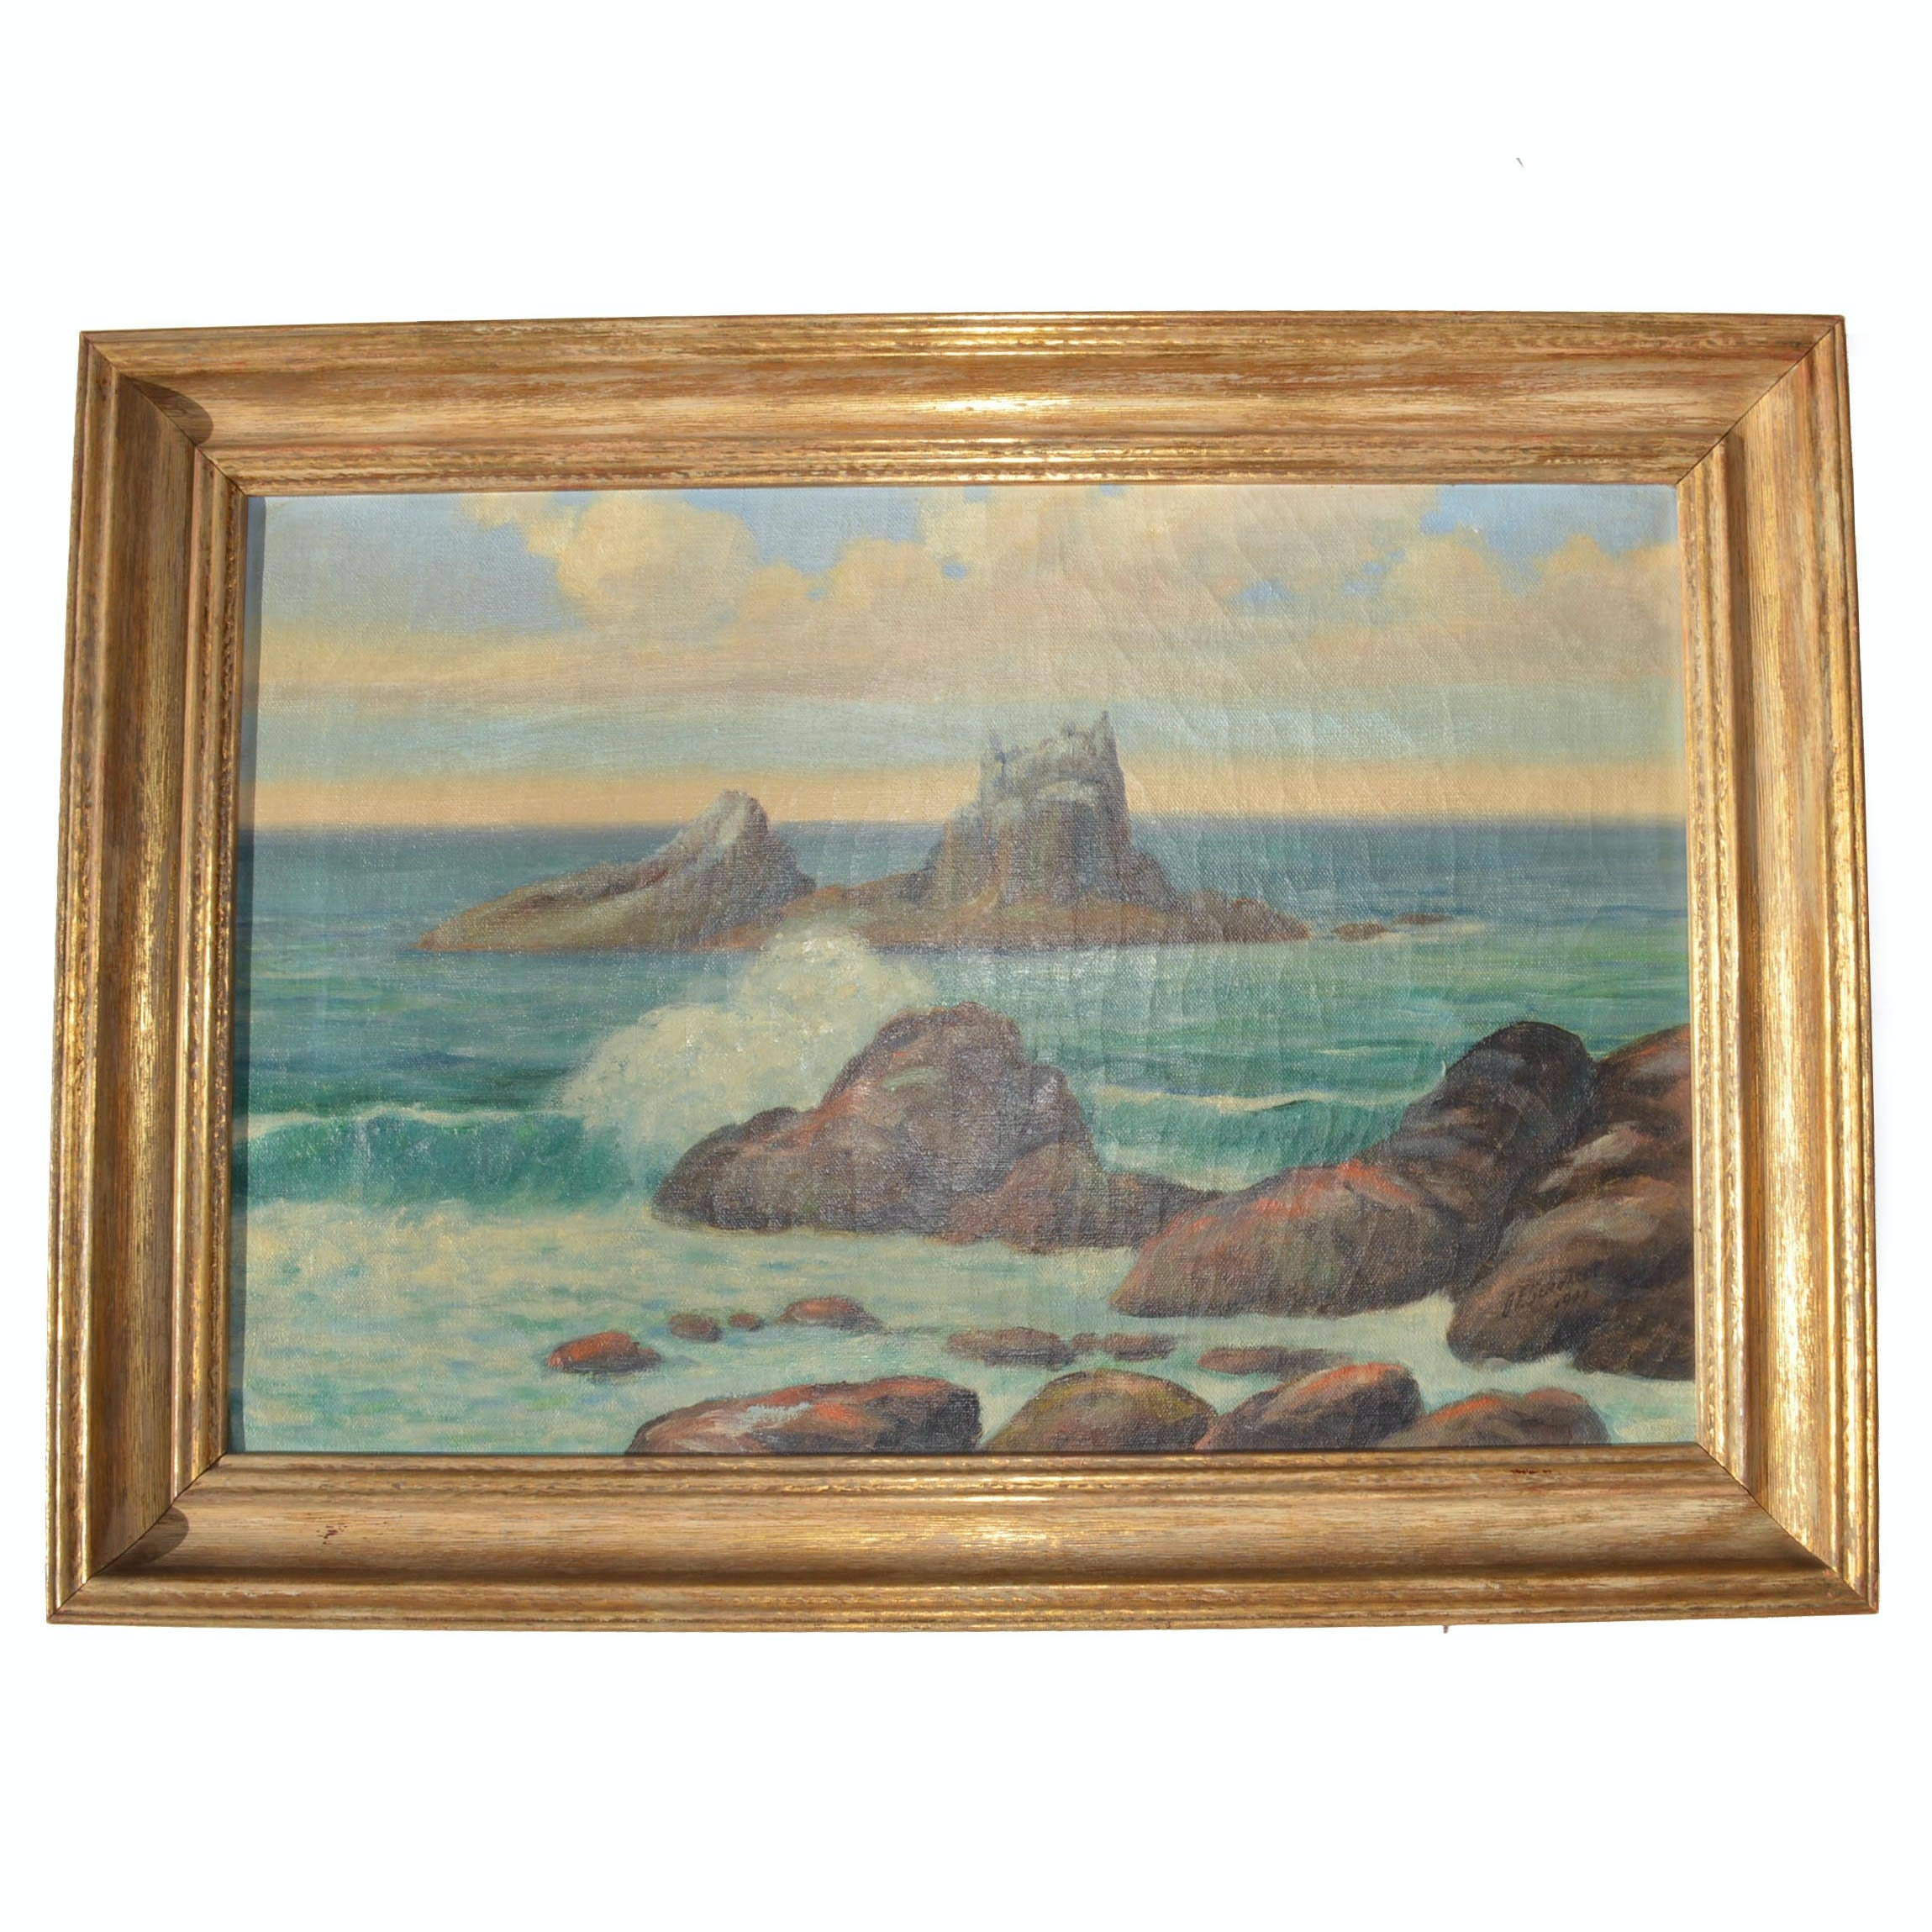 1940s D.E.Gerhardt Acrylic on Canvas Seascape Painting